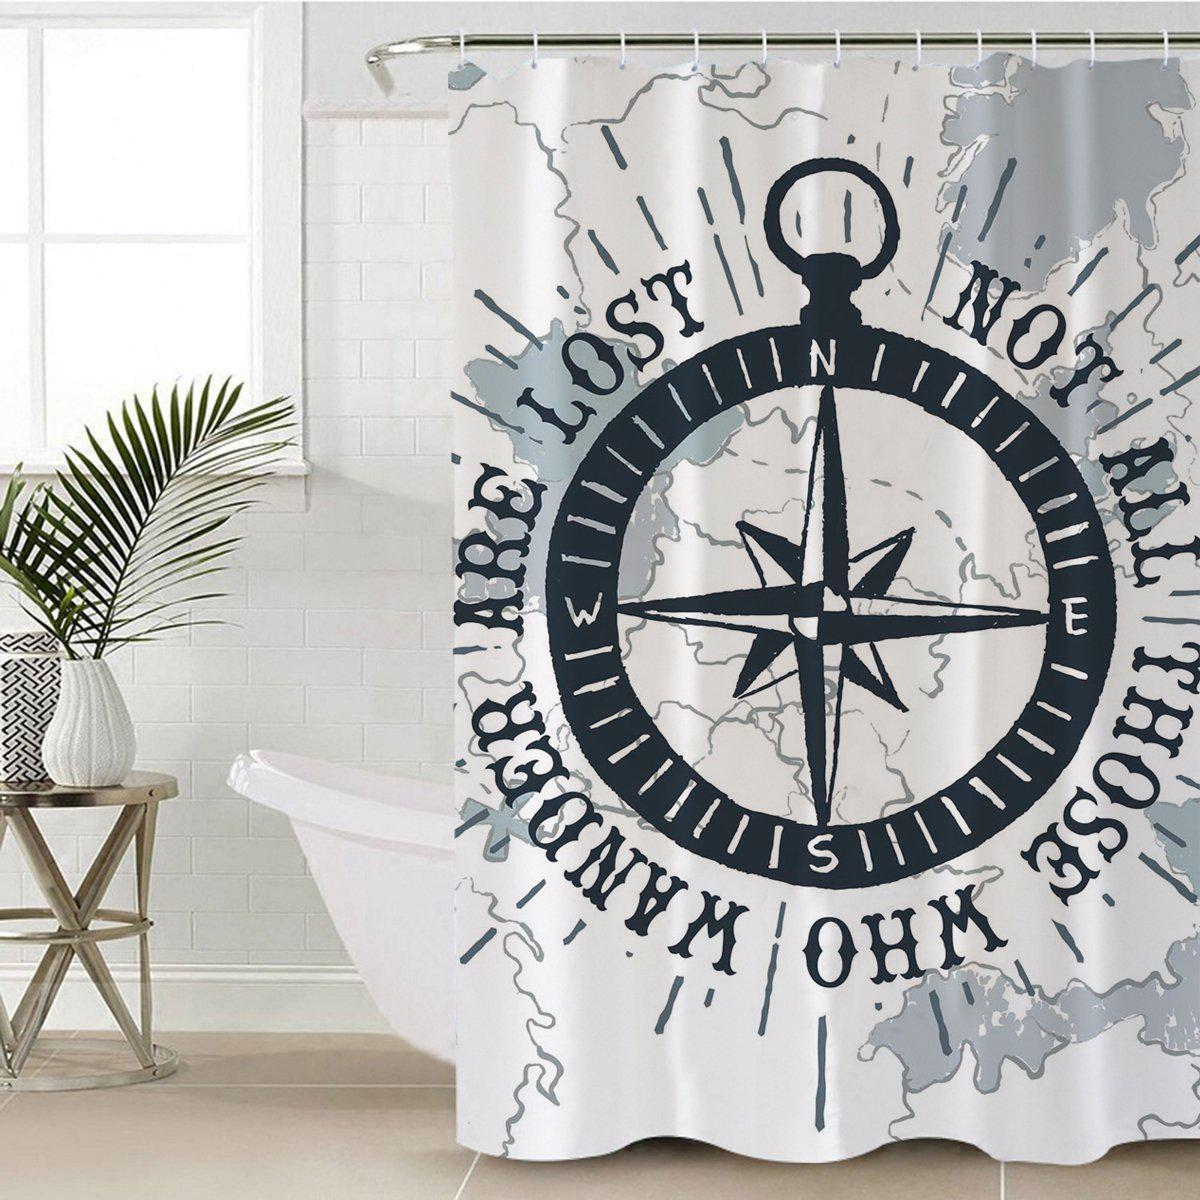 "The Ocean Wanderer Nautical Shower Curtain-Shower Curtain-59"" L. x 70"" H.-Coastal Passion"